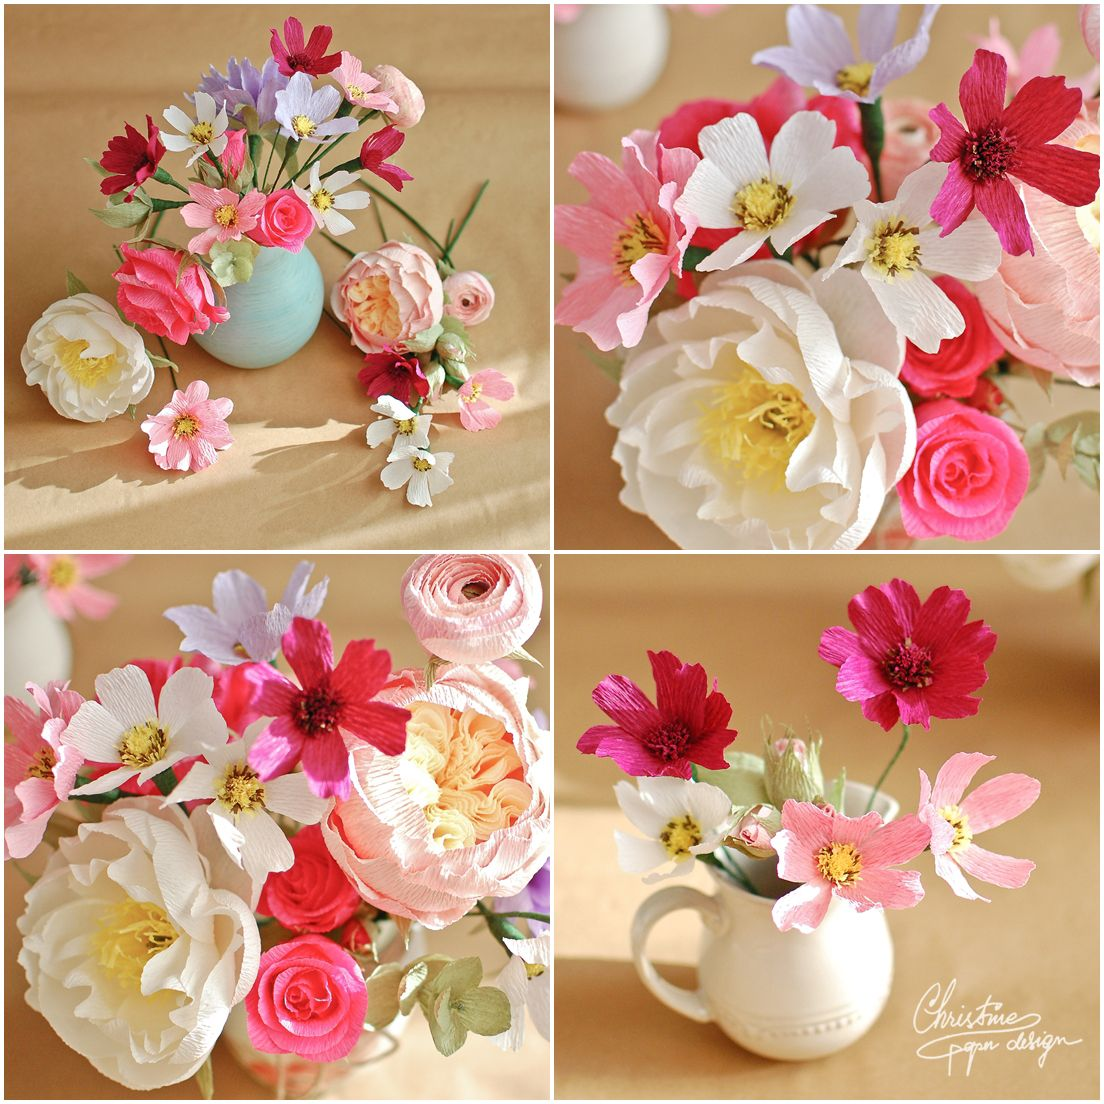 6Christine paper design - paper flowers, cosmos. | MakinFlowers ...